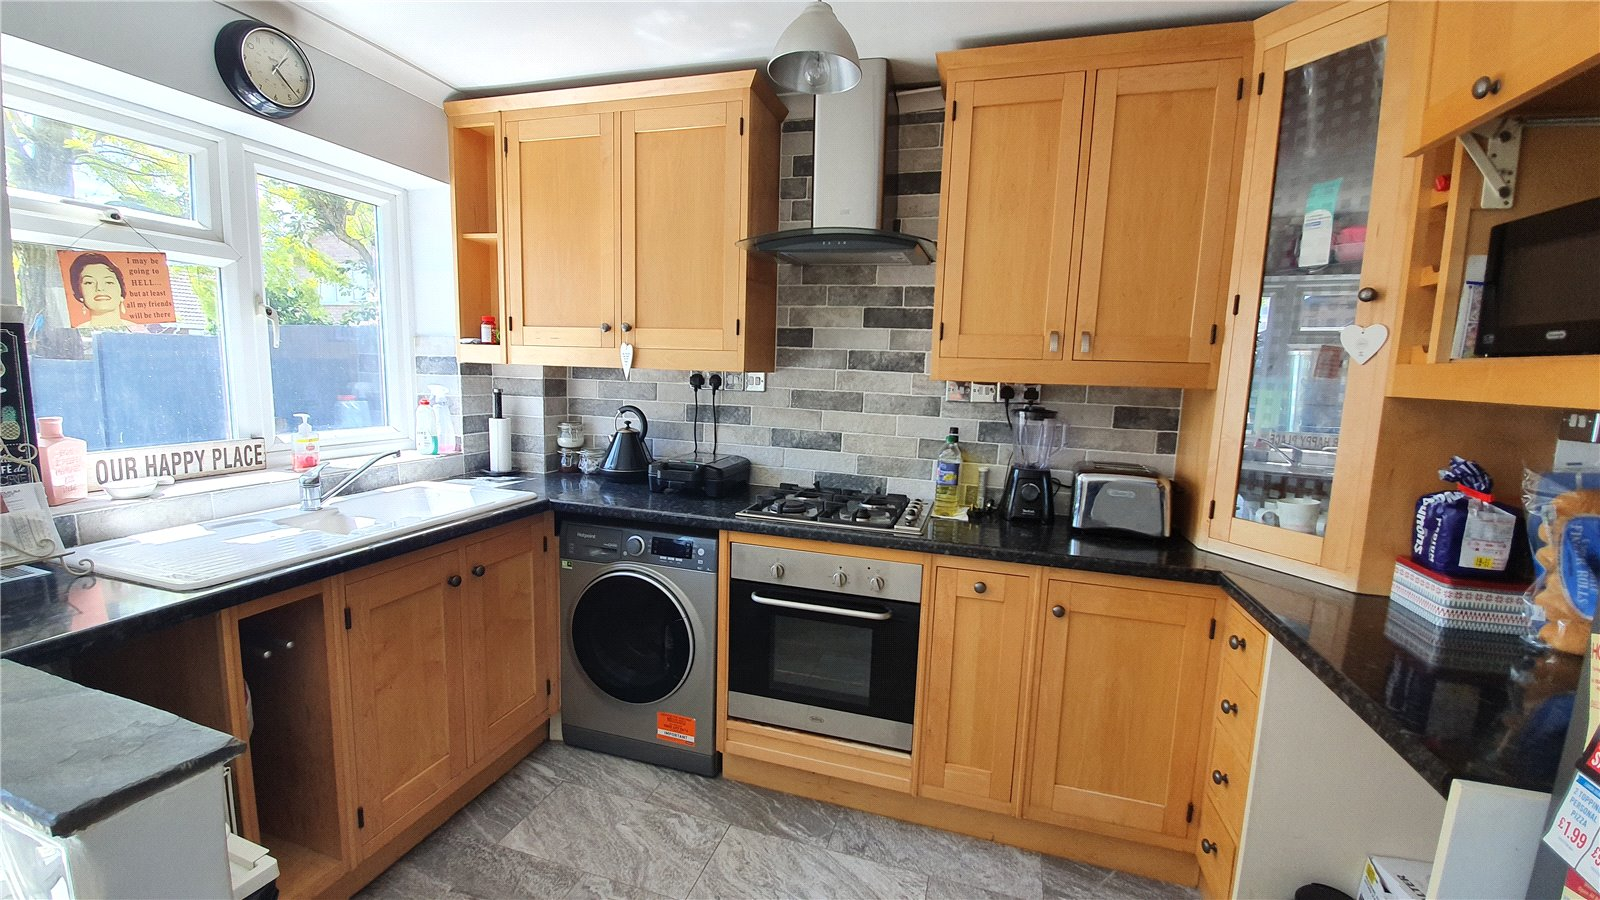 3 bed house for sale in Otter Way, Eaton Socon  - Property Image 5